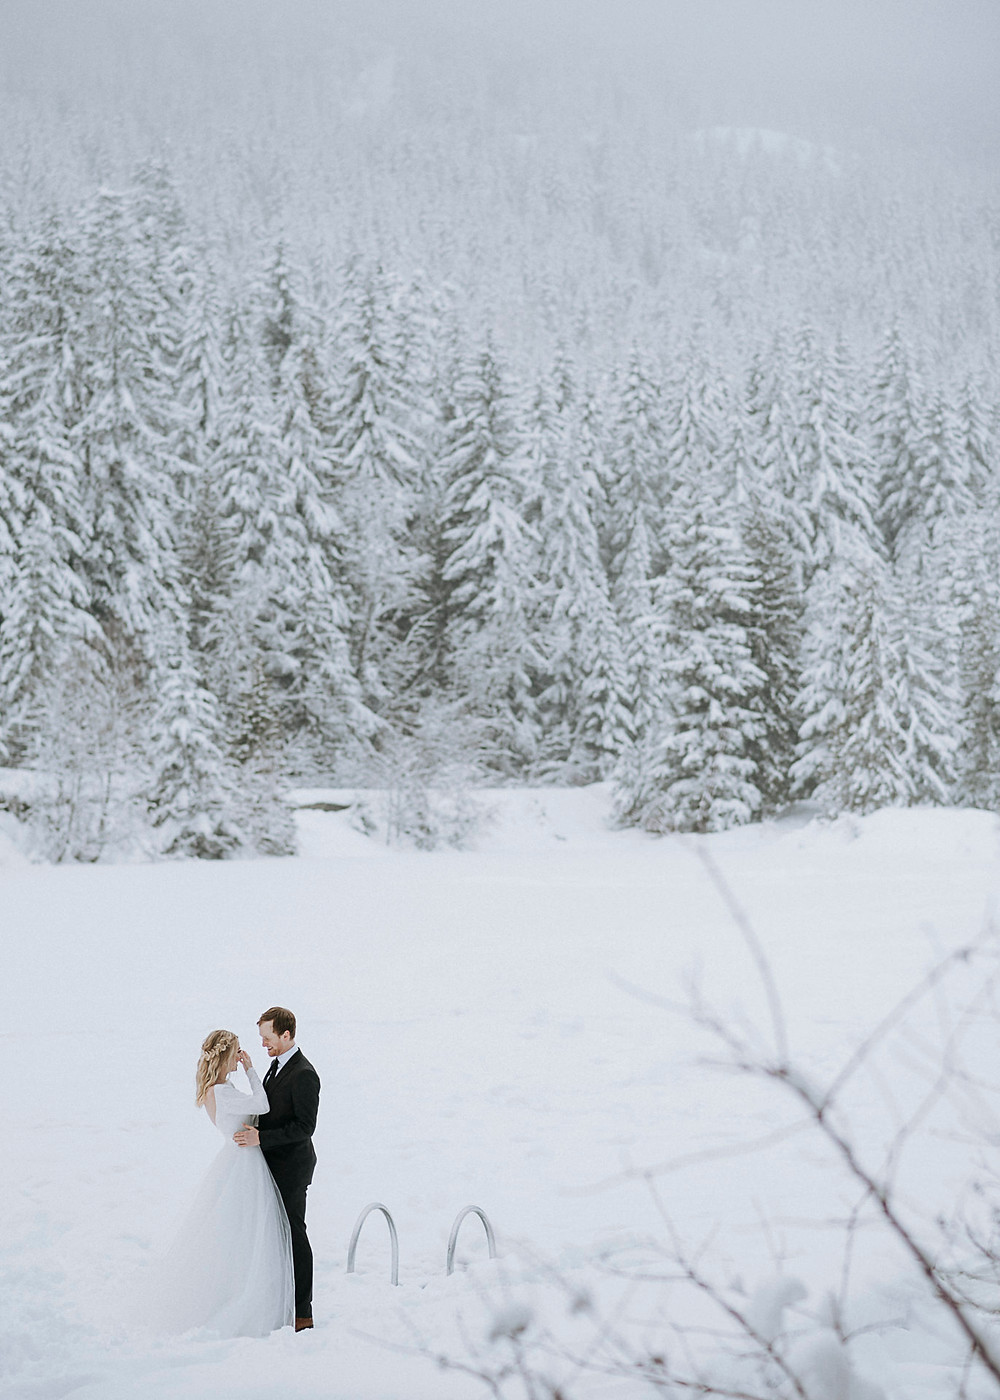 Winter elopement at Nita Lake Lodge in Whistler bride groom have tearful first look on dock by frozen lake